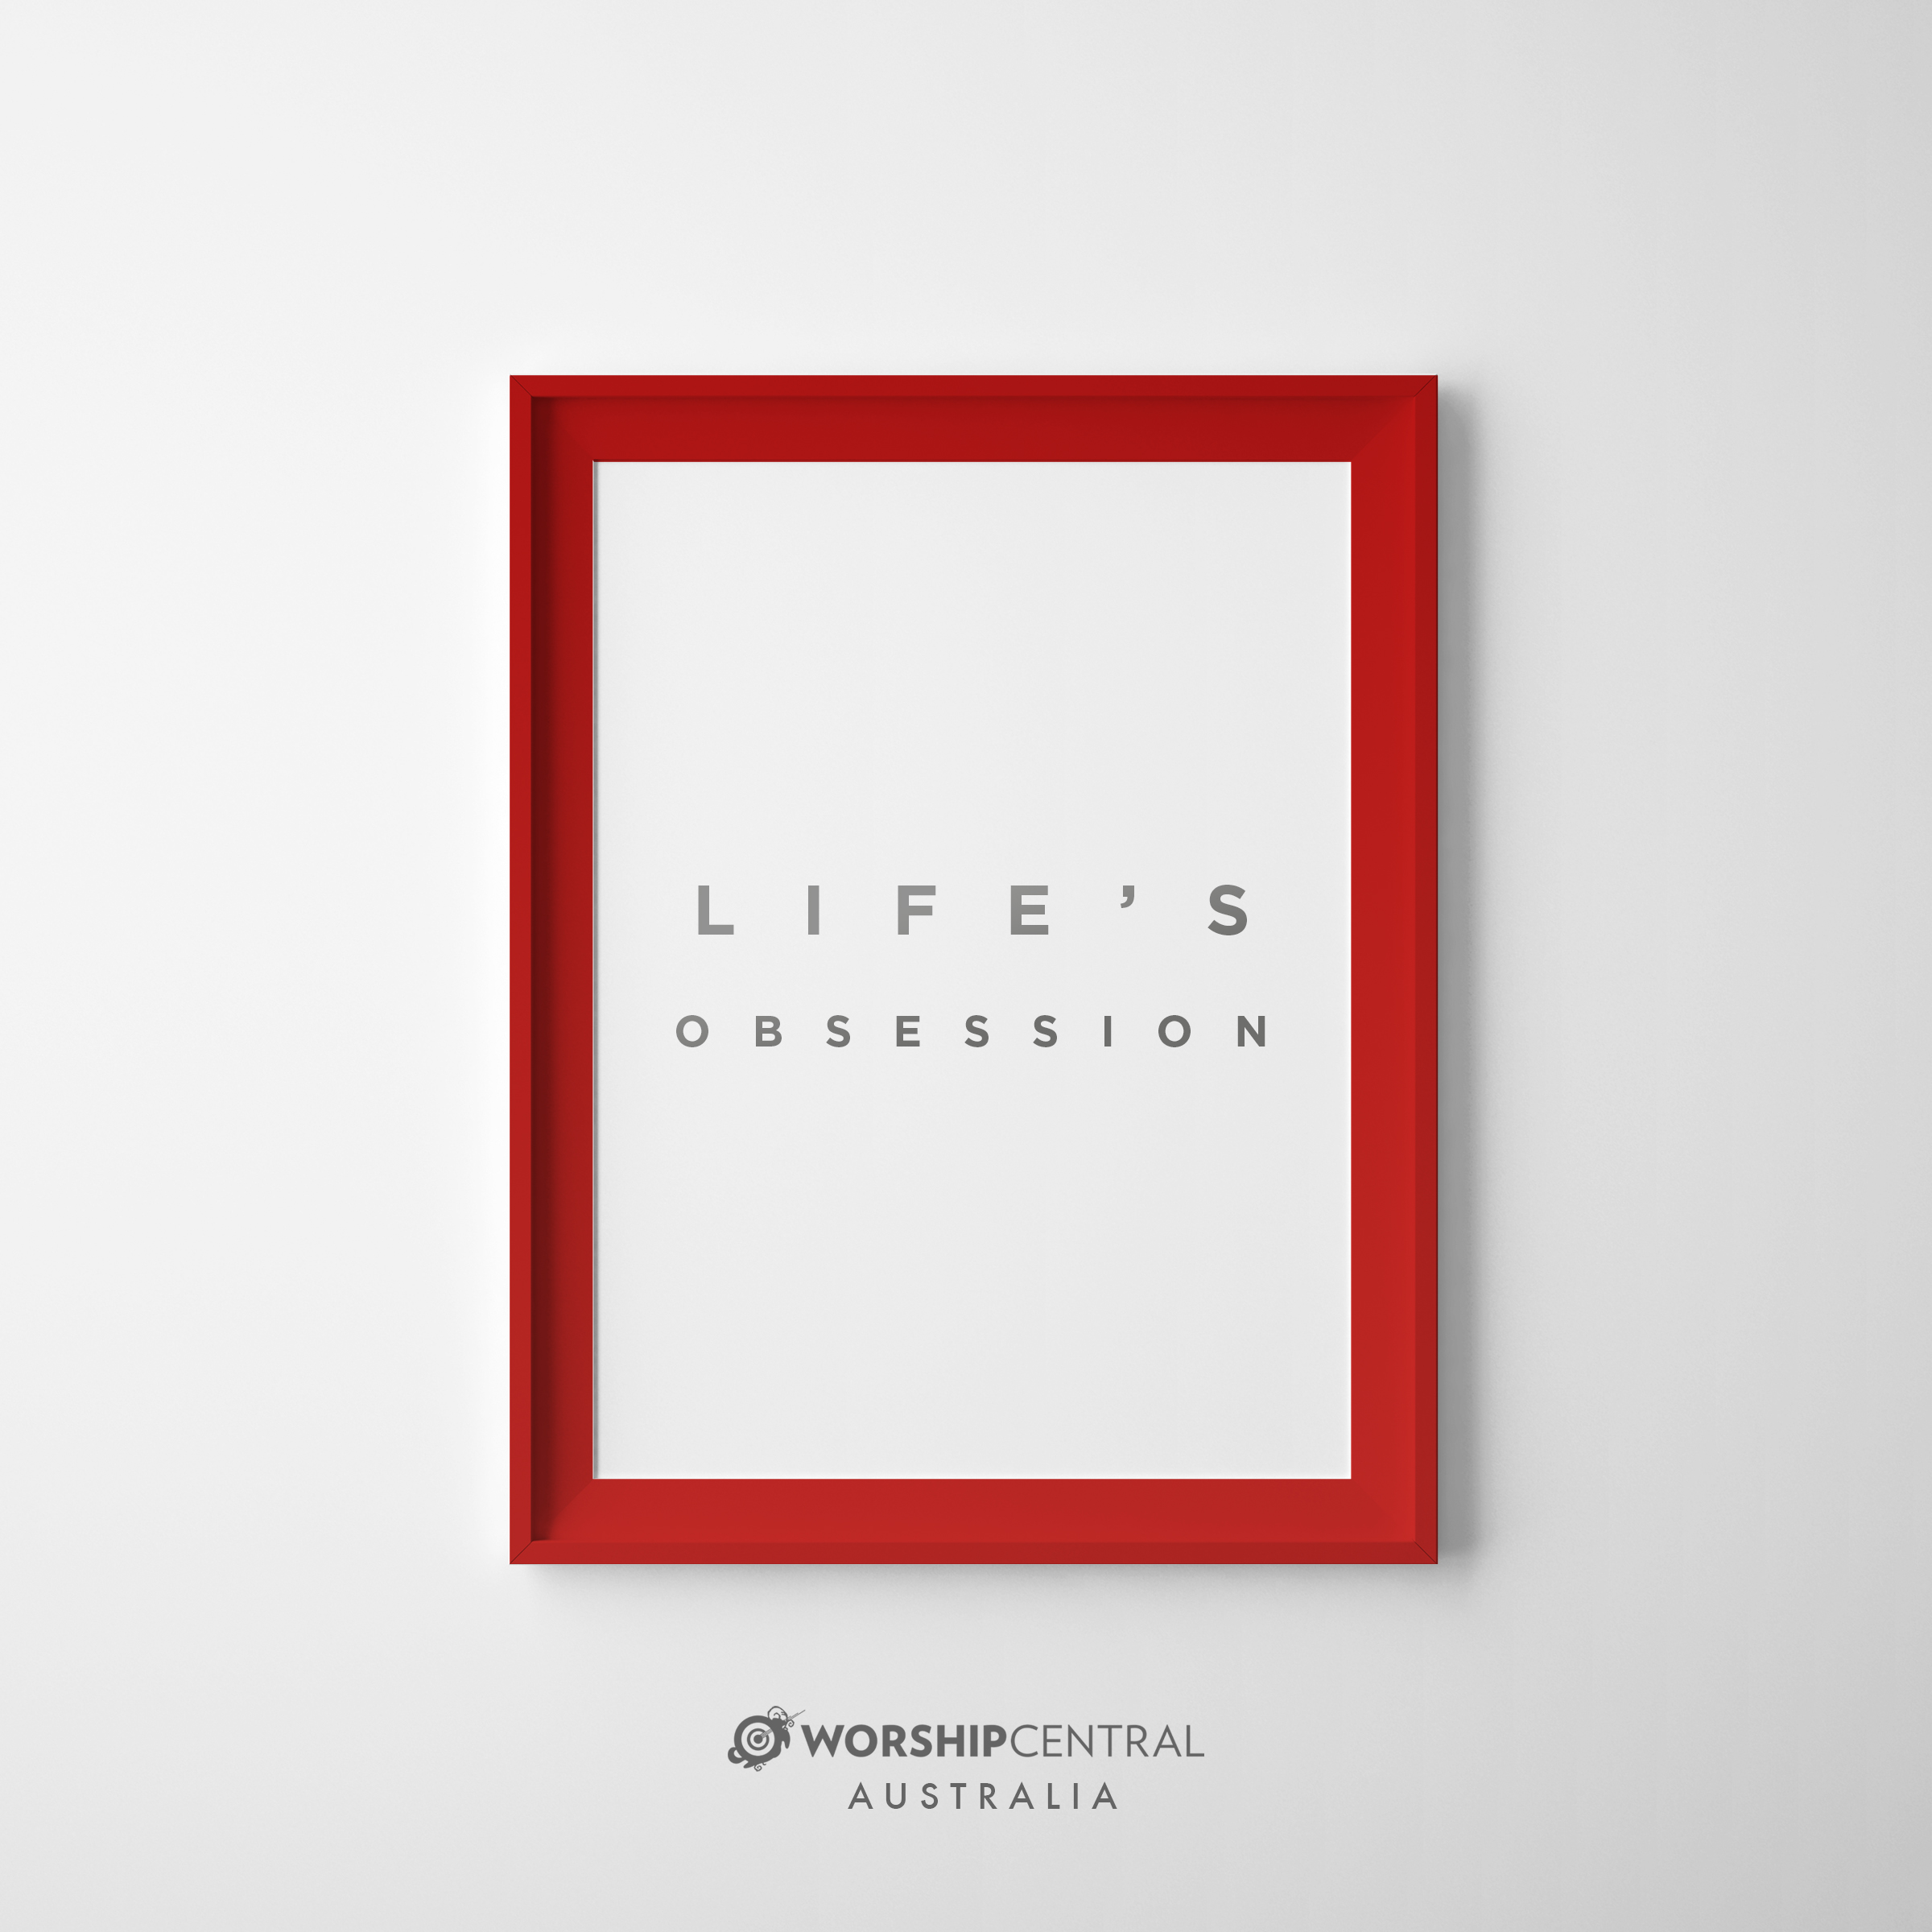 LifesObsession_Artwork2400x2400.jpg